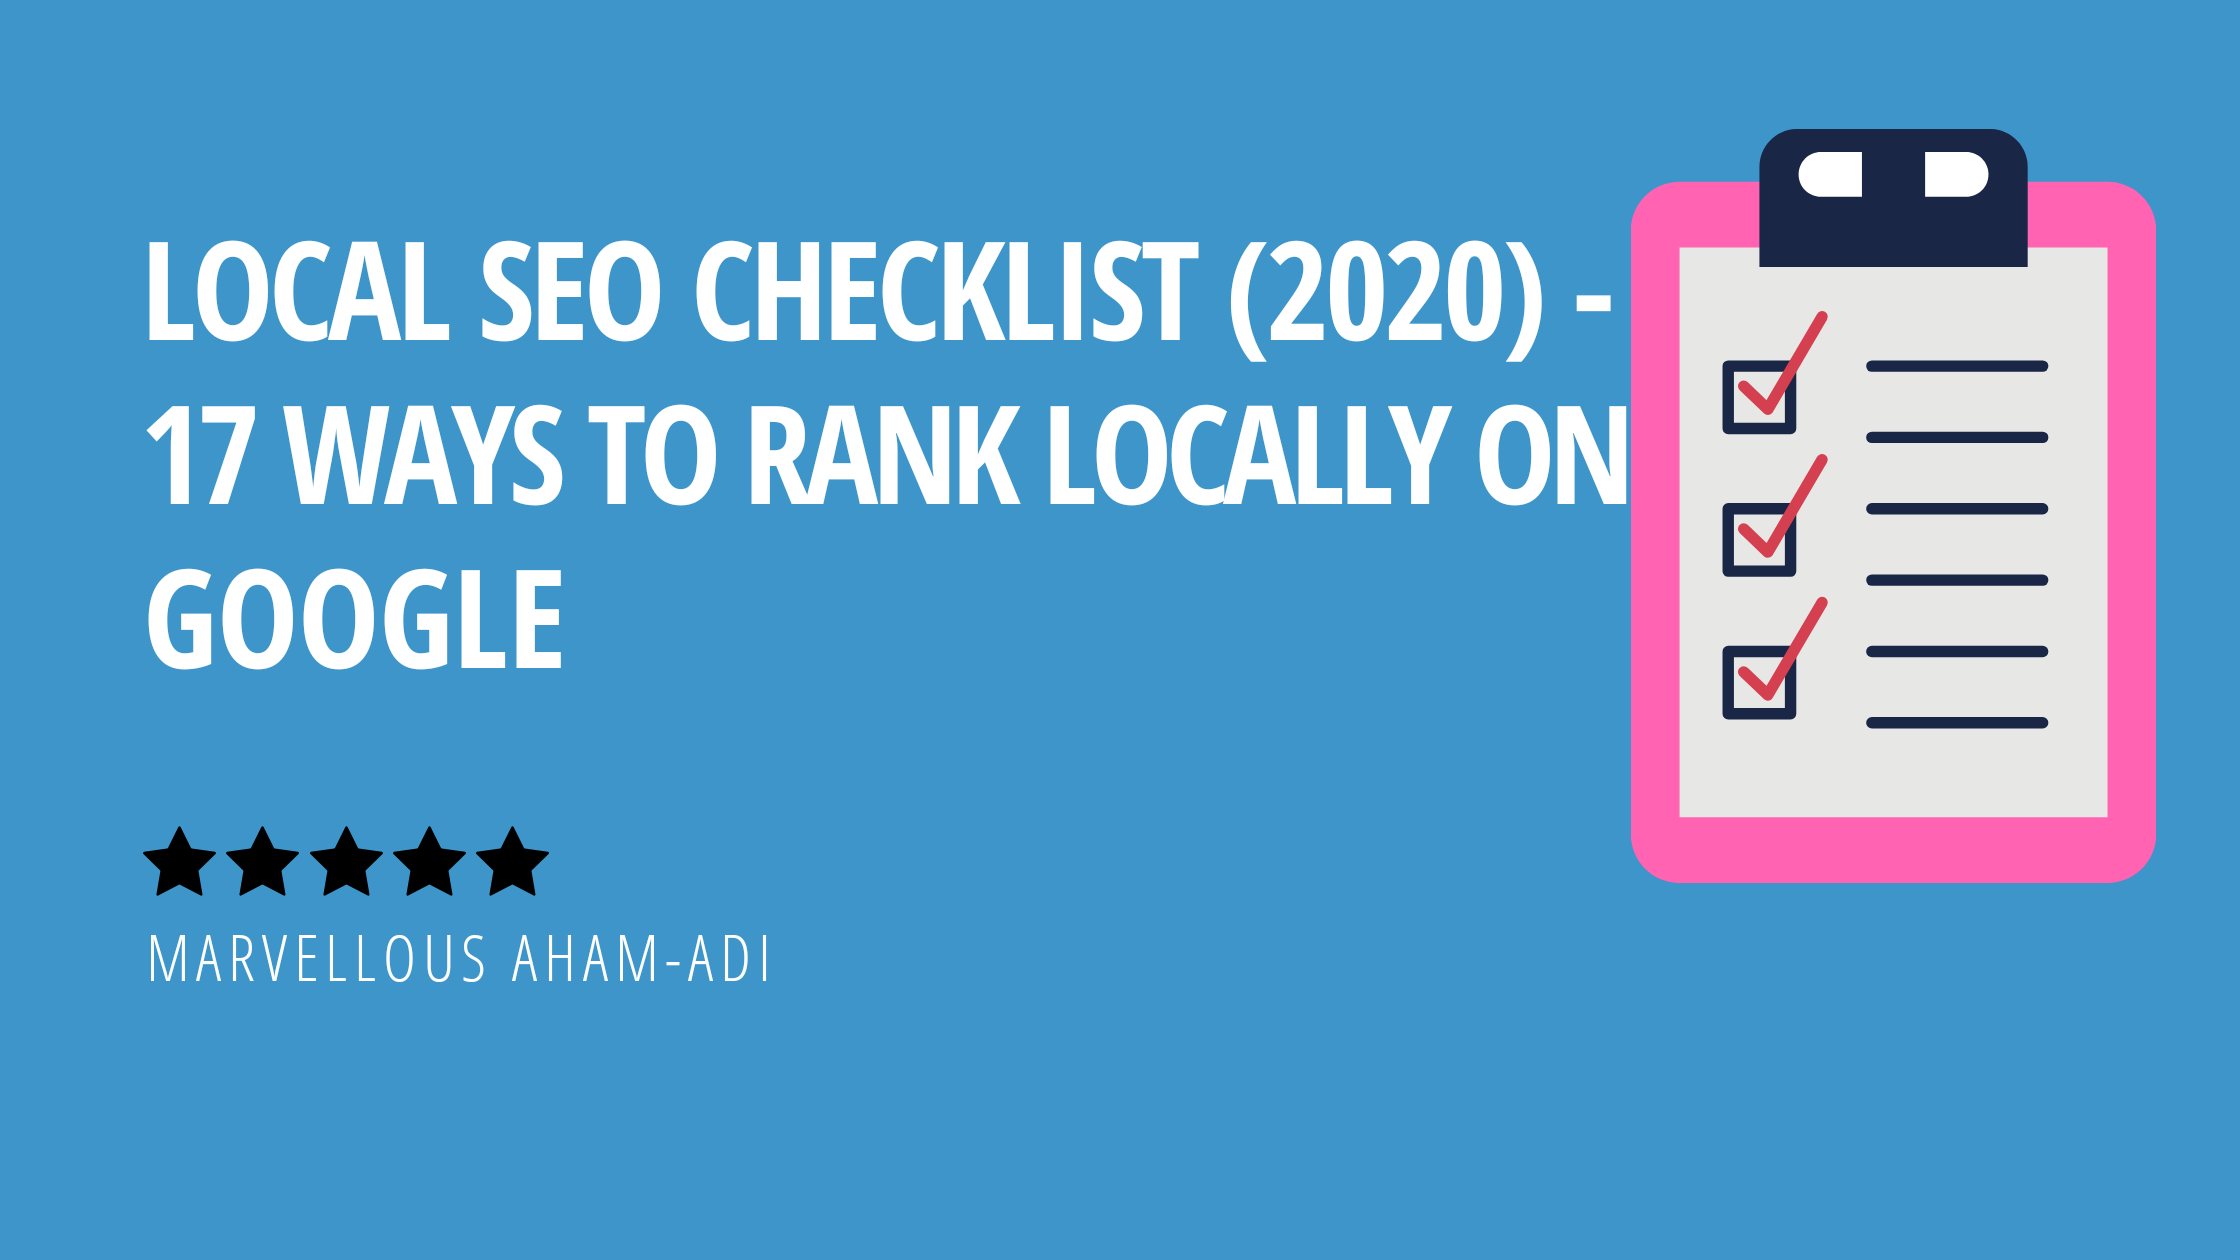 Local SEO Checklist (2020) – 17 Ways to Rank Locally on Google